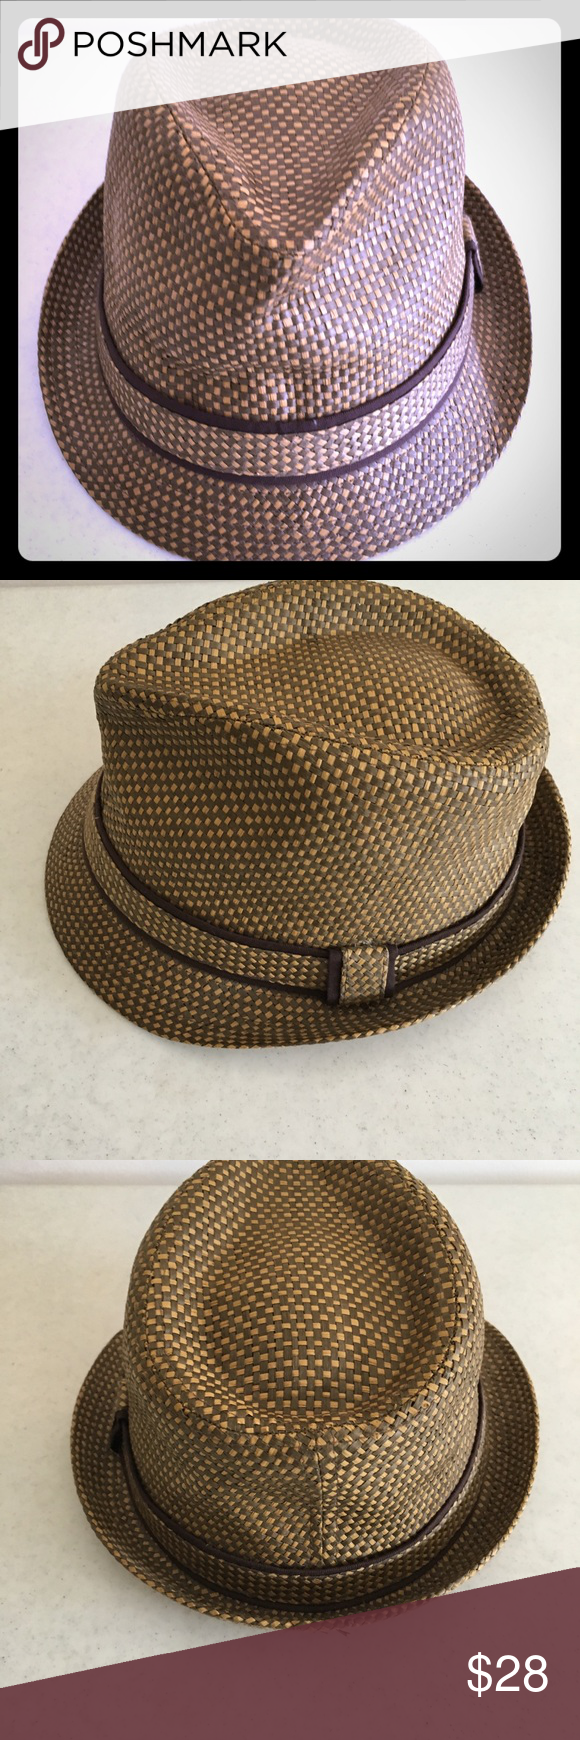 3a2c402c99 Pre Black Friday Sale Men's amazing Fedora Pre Black Friday Sale From the  late 1890s to the 1950s, the fedora was THE hat to have for men.